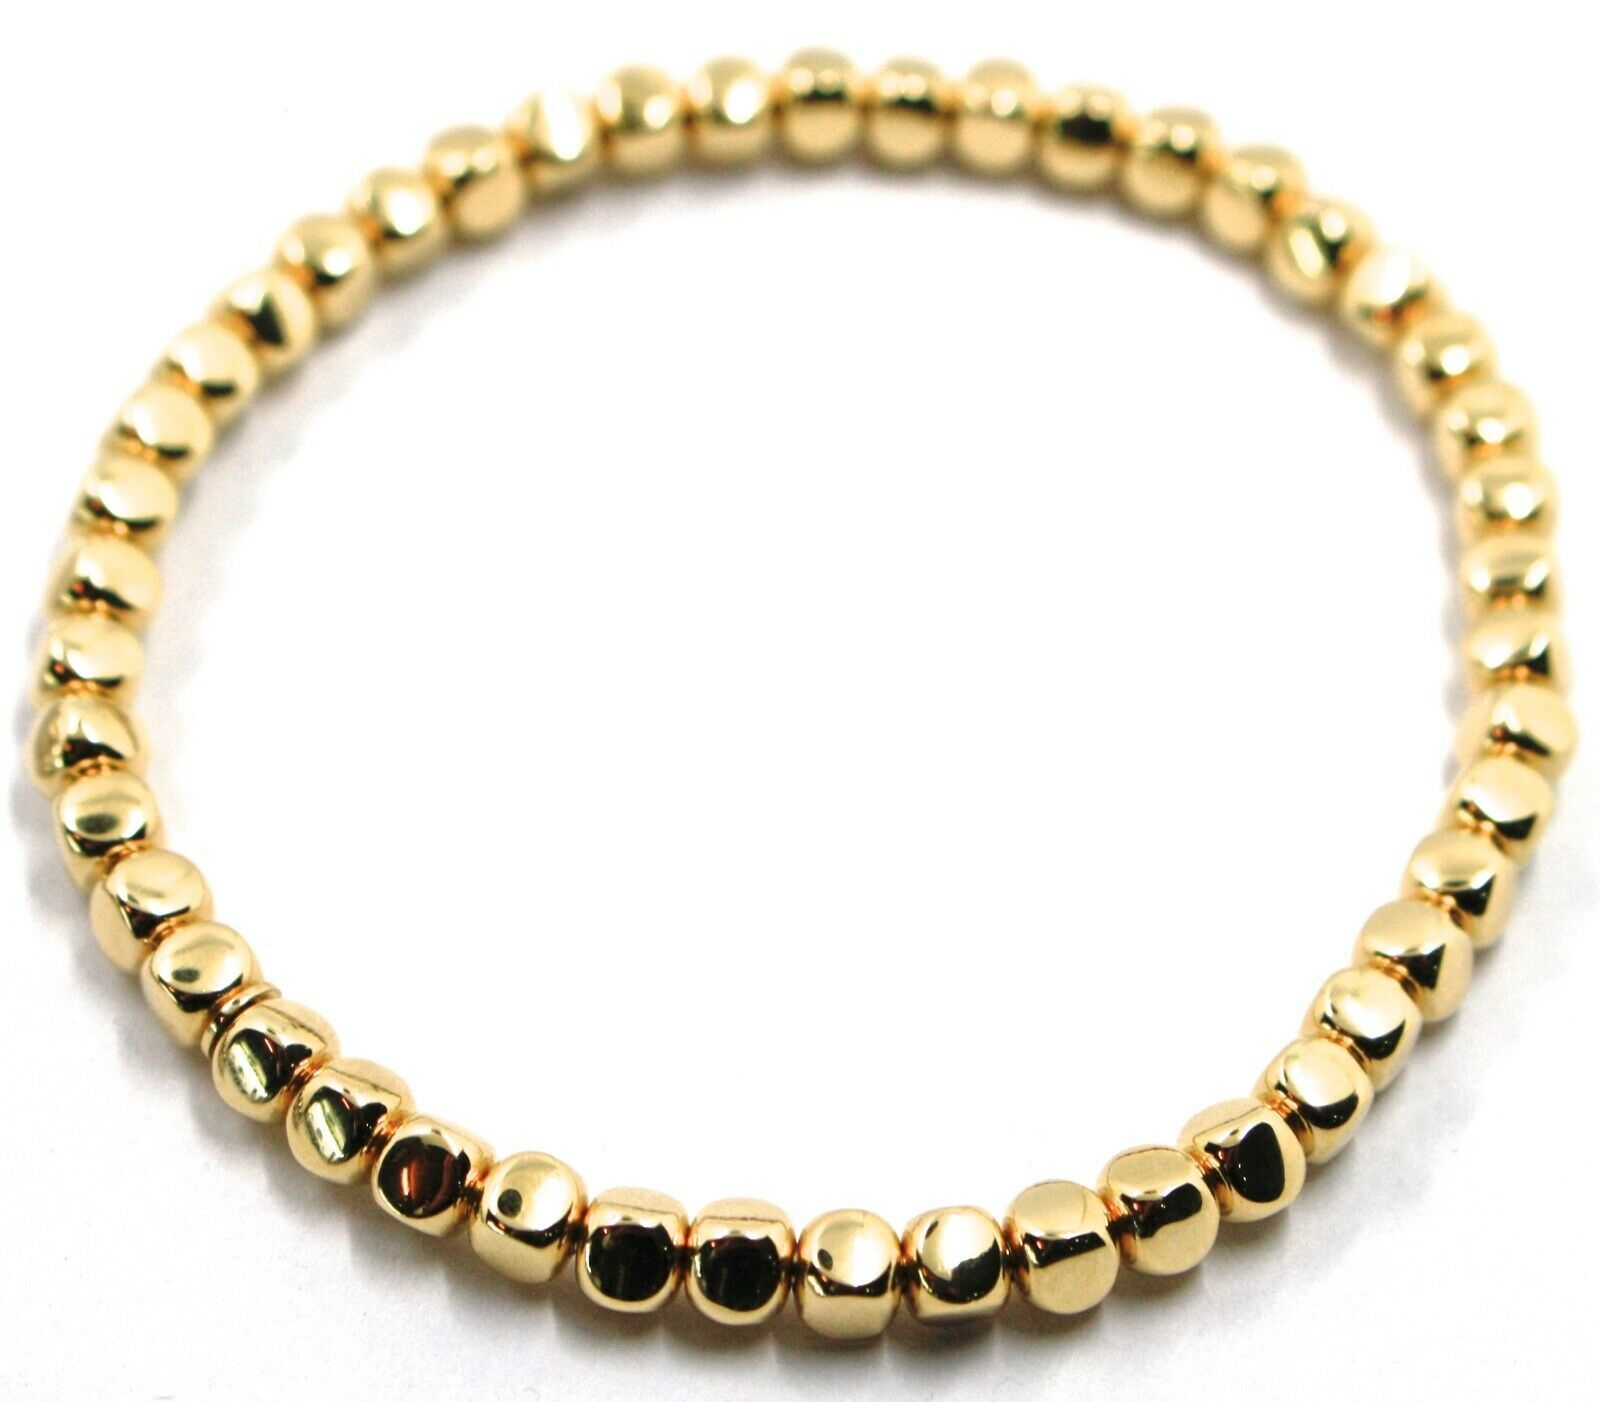 "SOLID 18K YELLOW GOLD ELASTIC BRACELET, CUBES DIAMETER 4 MM 0.16"", MADE IN ITALY"